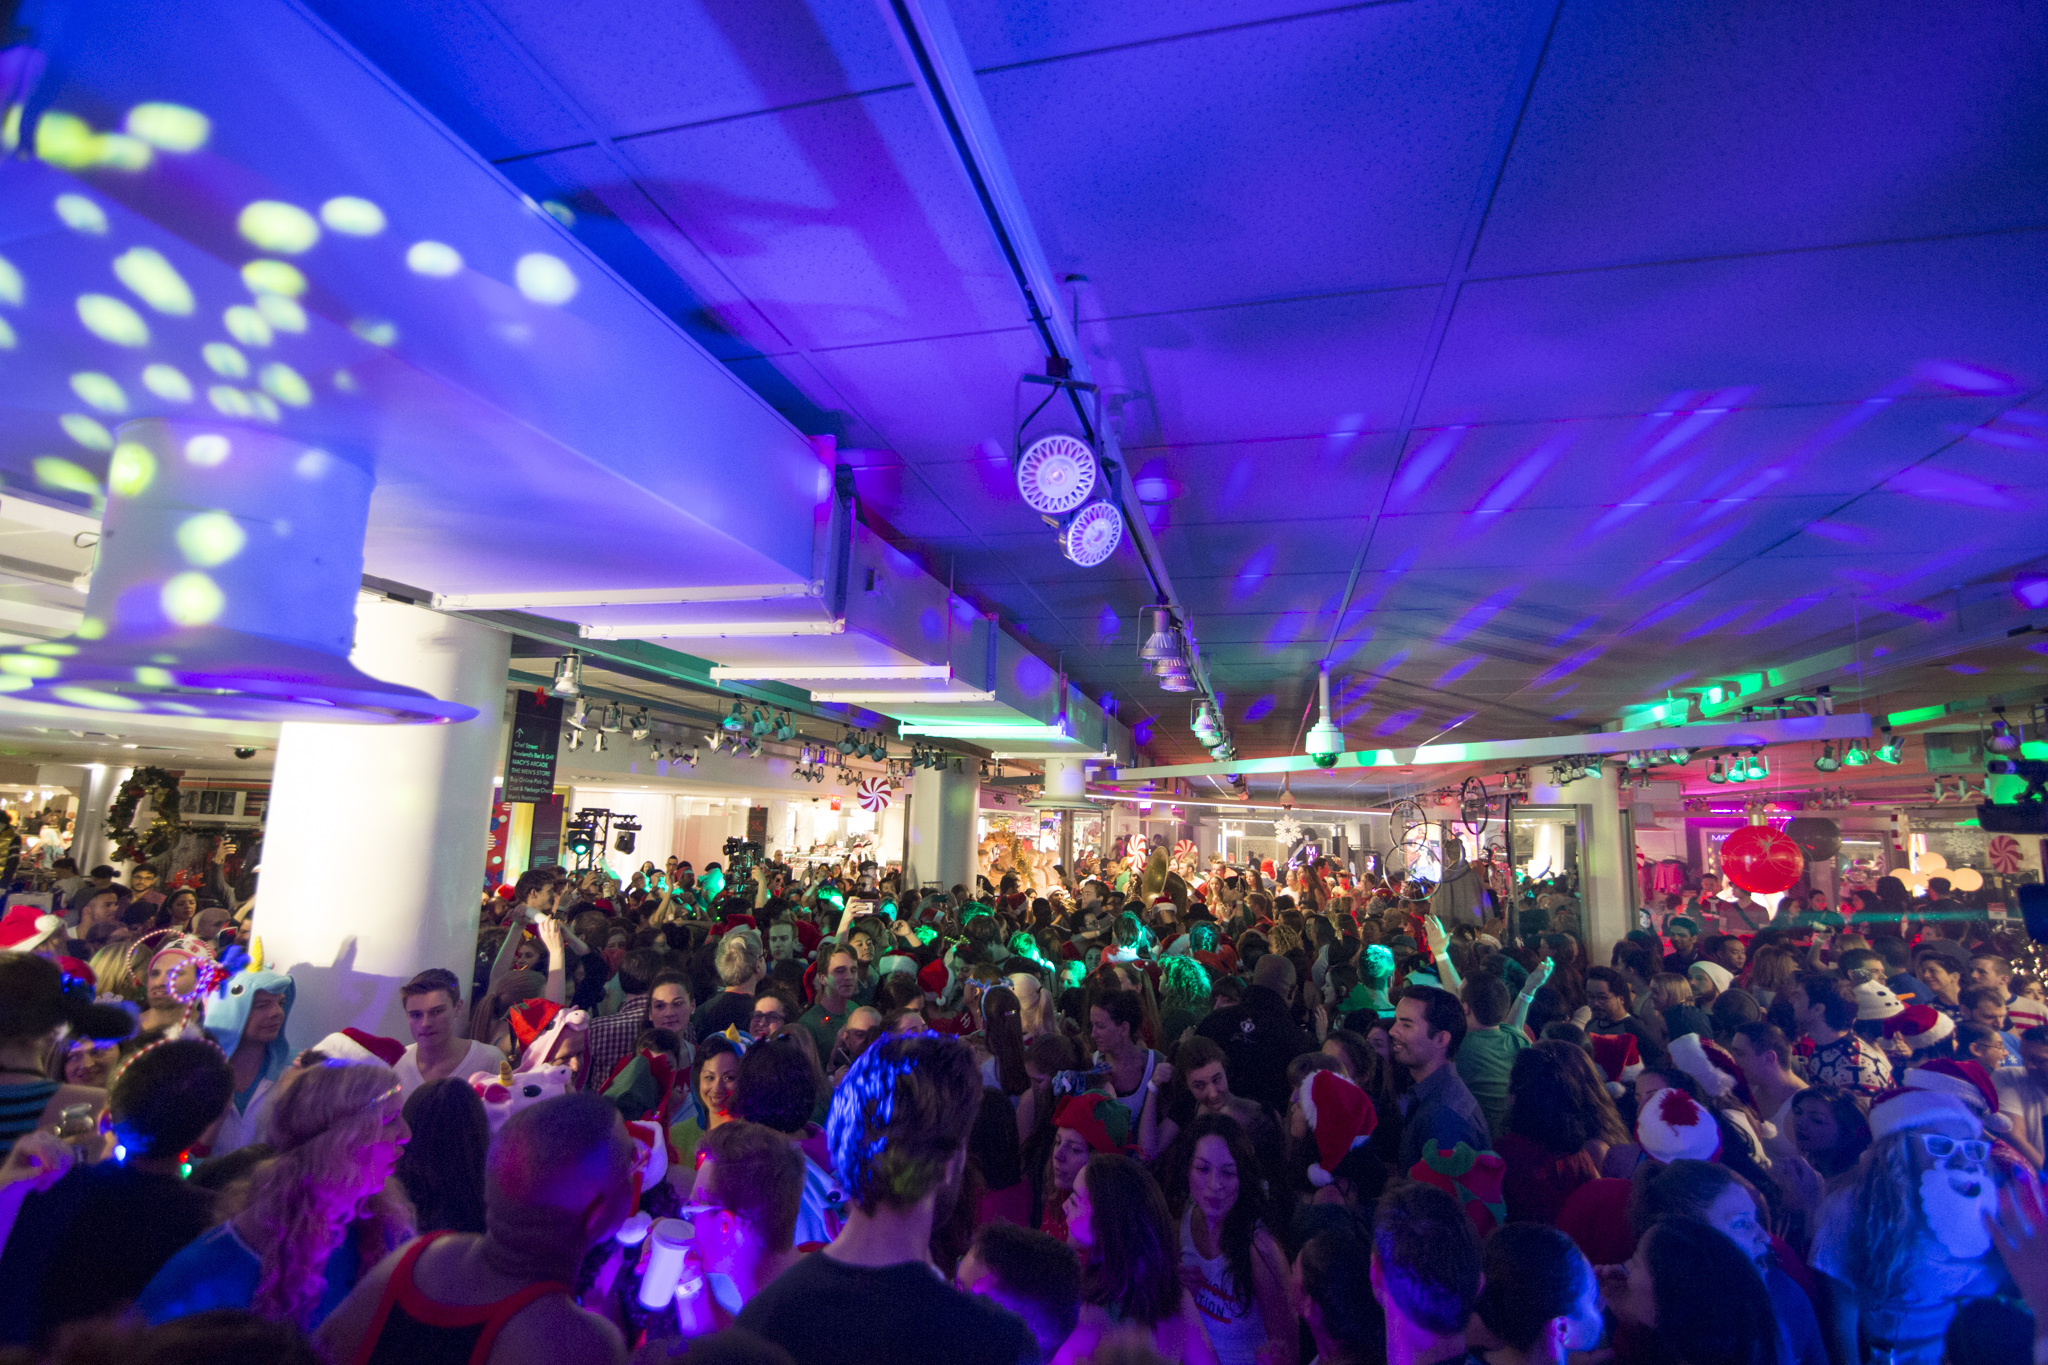 About 1000 people attended Macy's first Daybreaker dance party at its New York flagship store on 34th Street in December 2015.